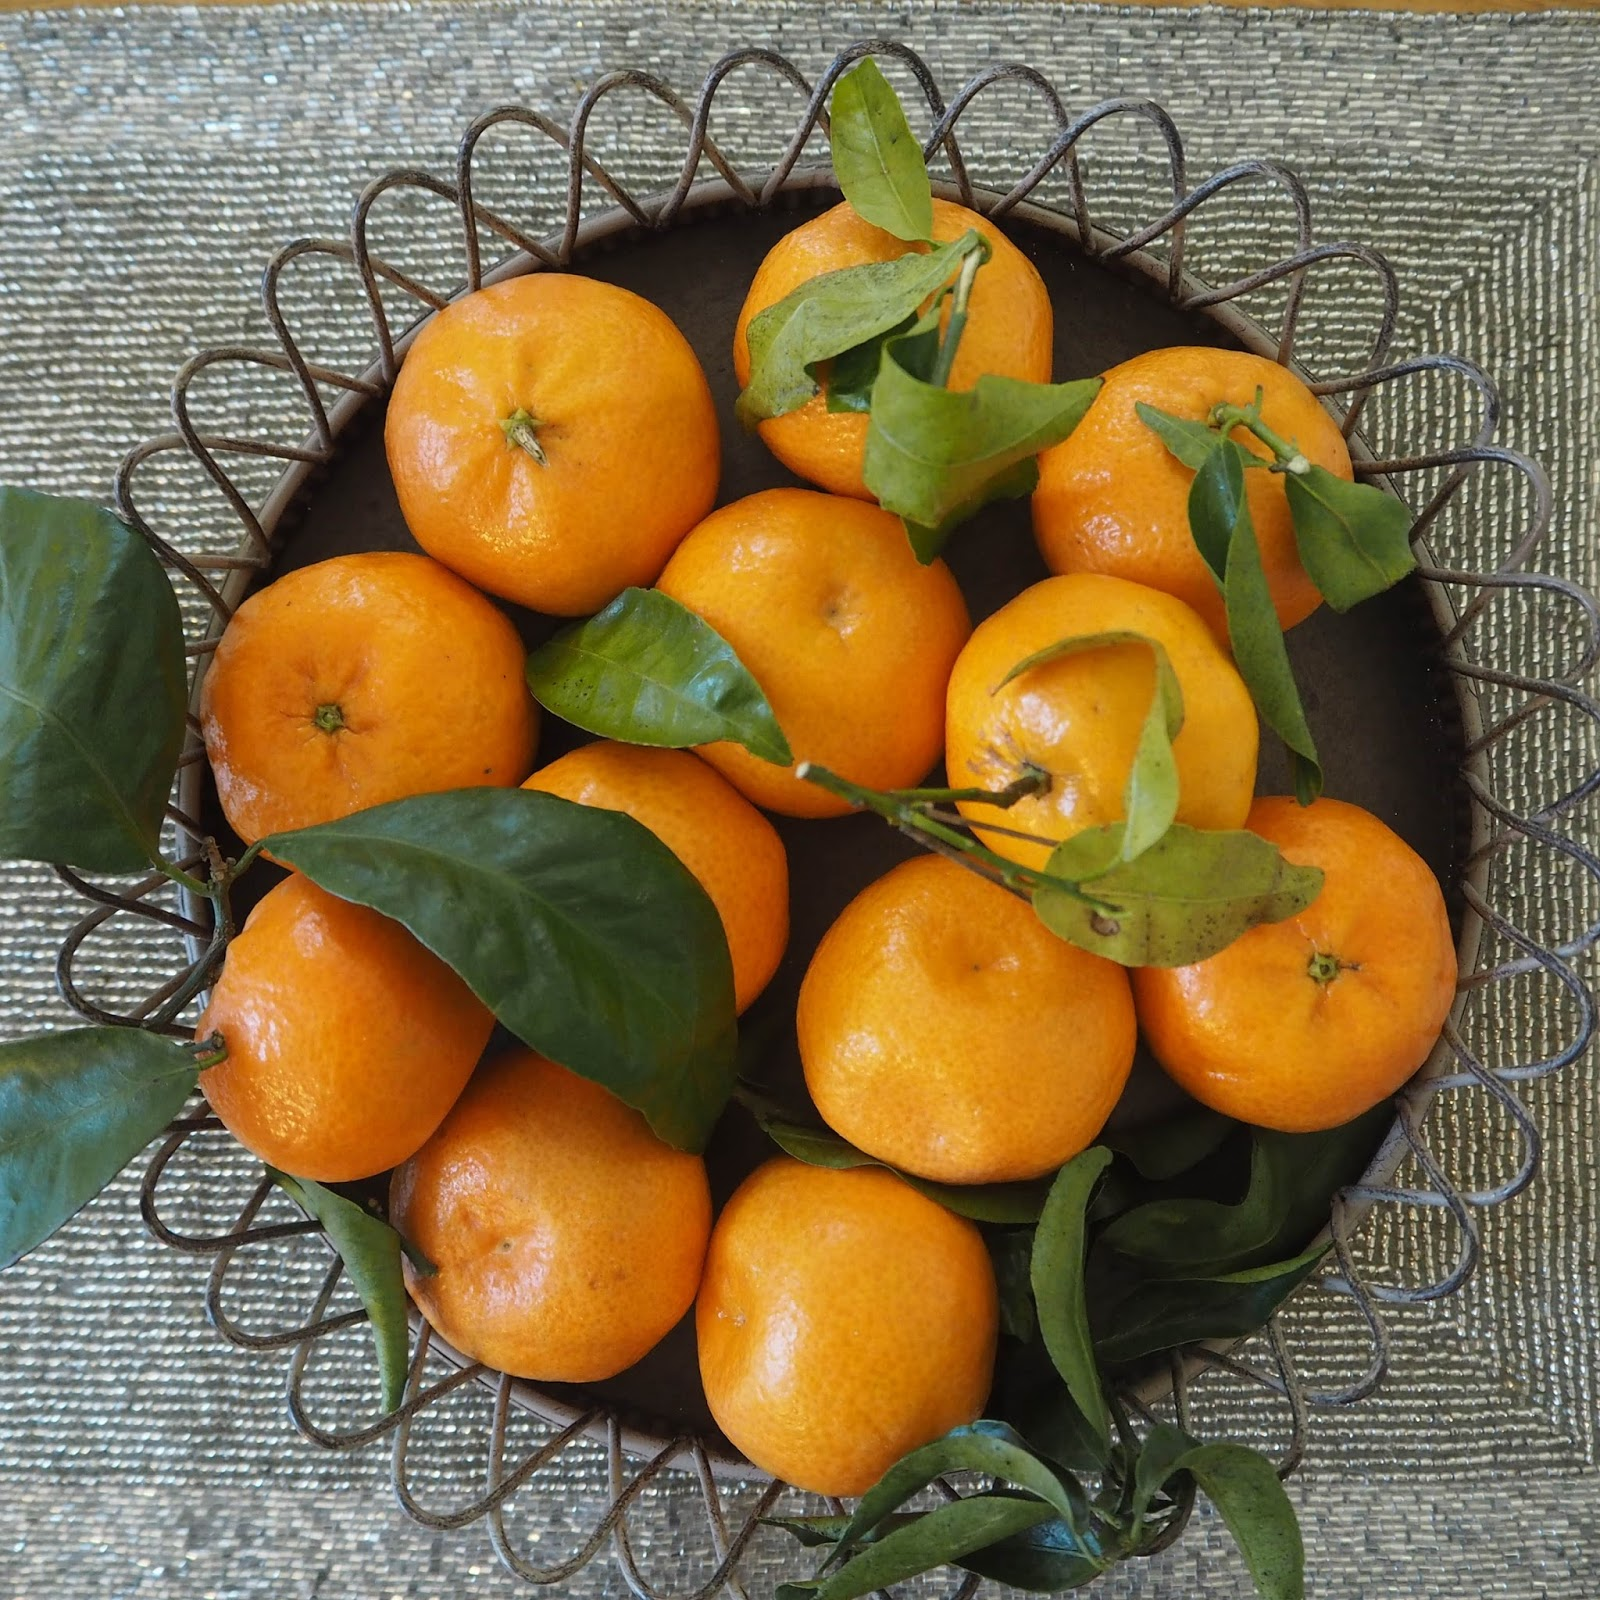 Clementines with leaves, Christmas